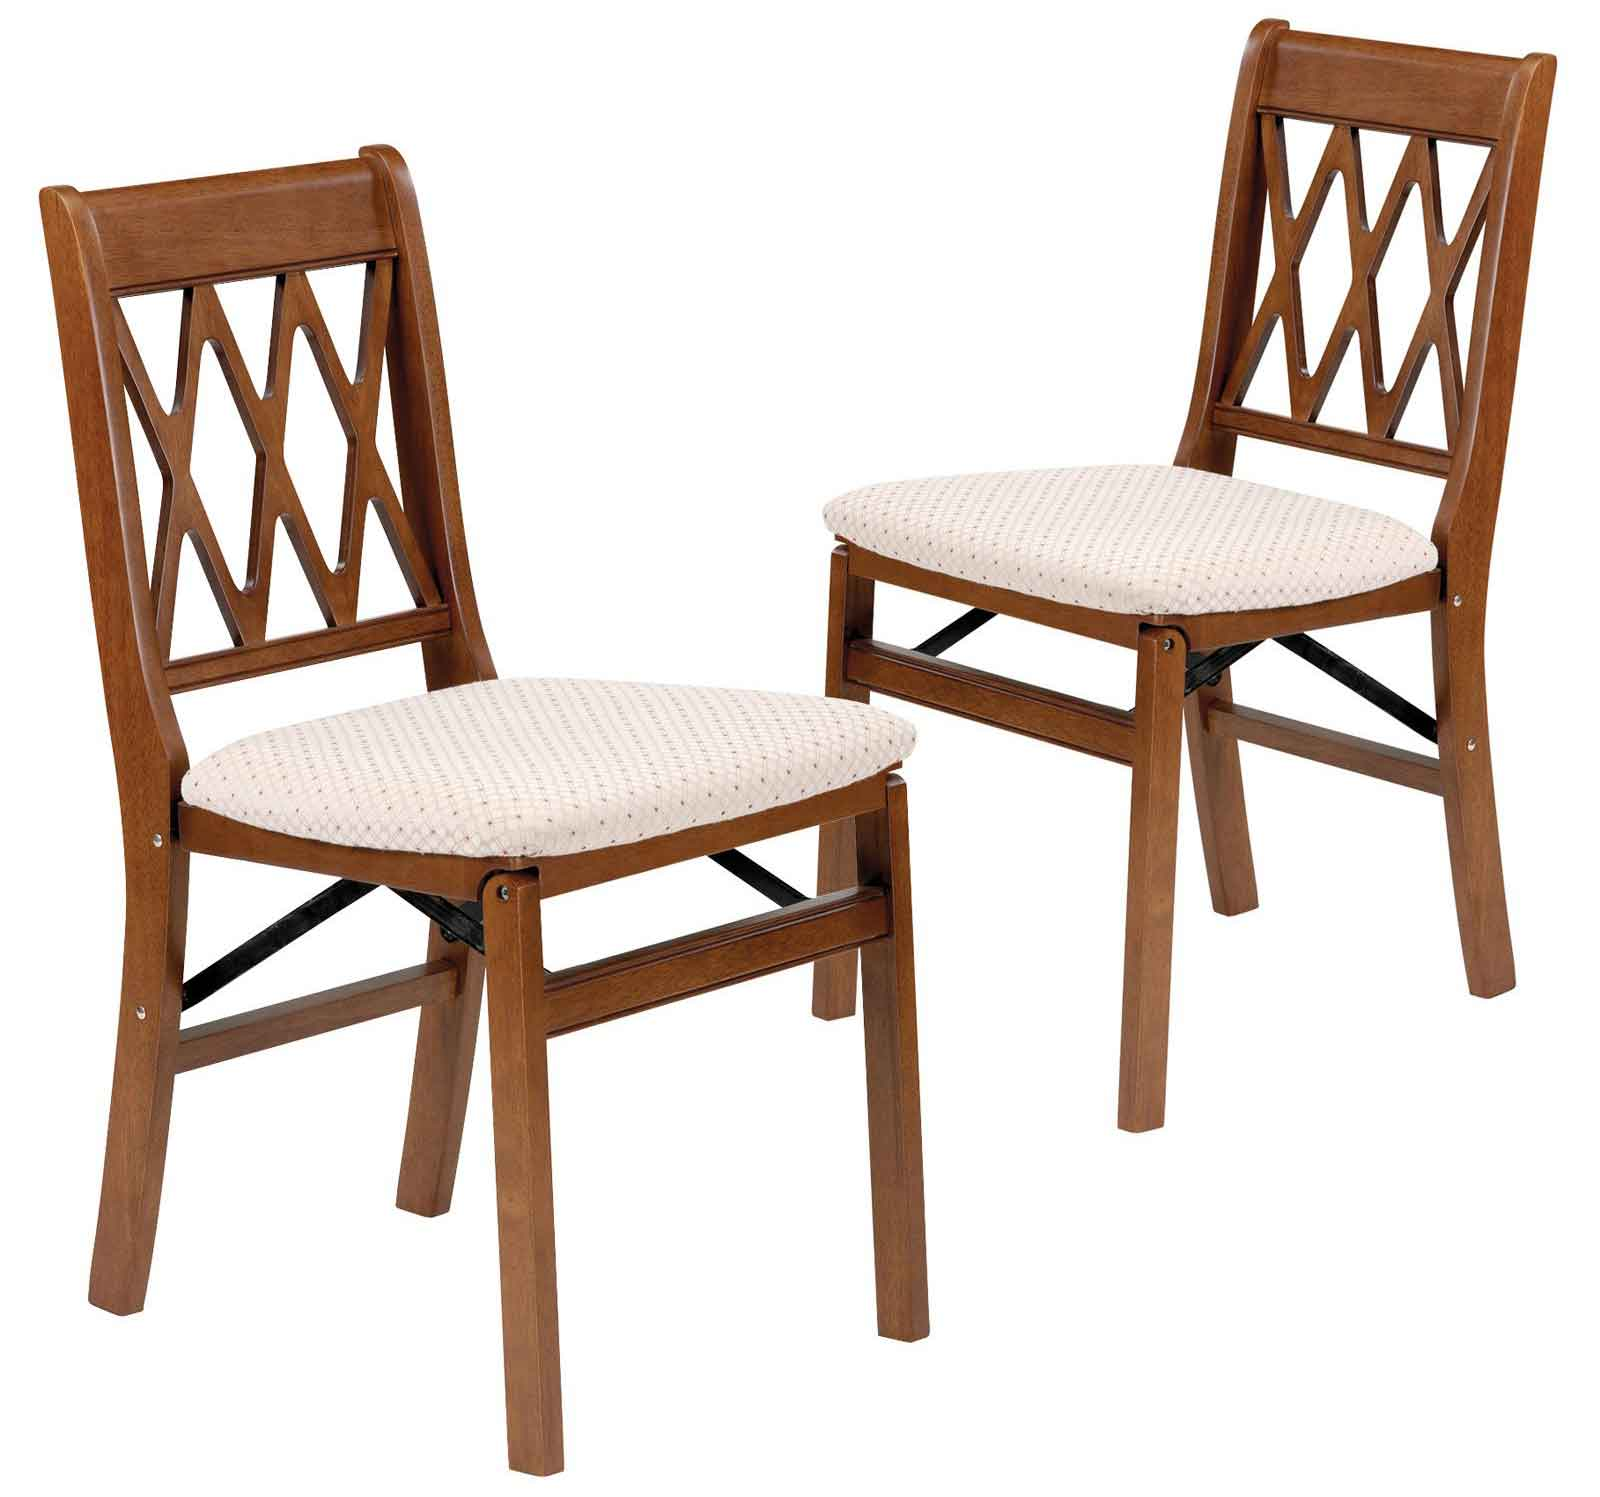 Foldable Wooden Chairs ~ Folding wooden chair product review